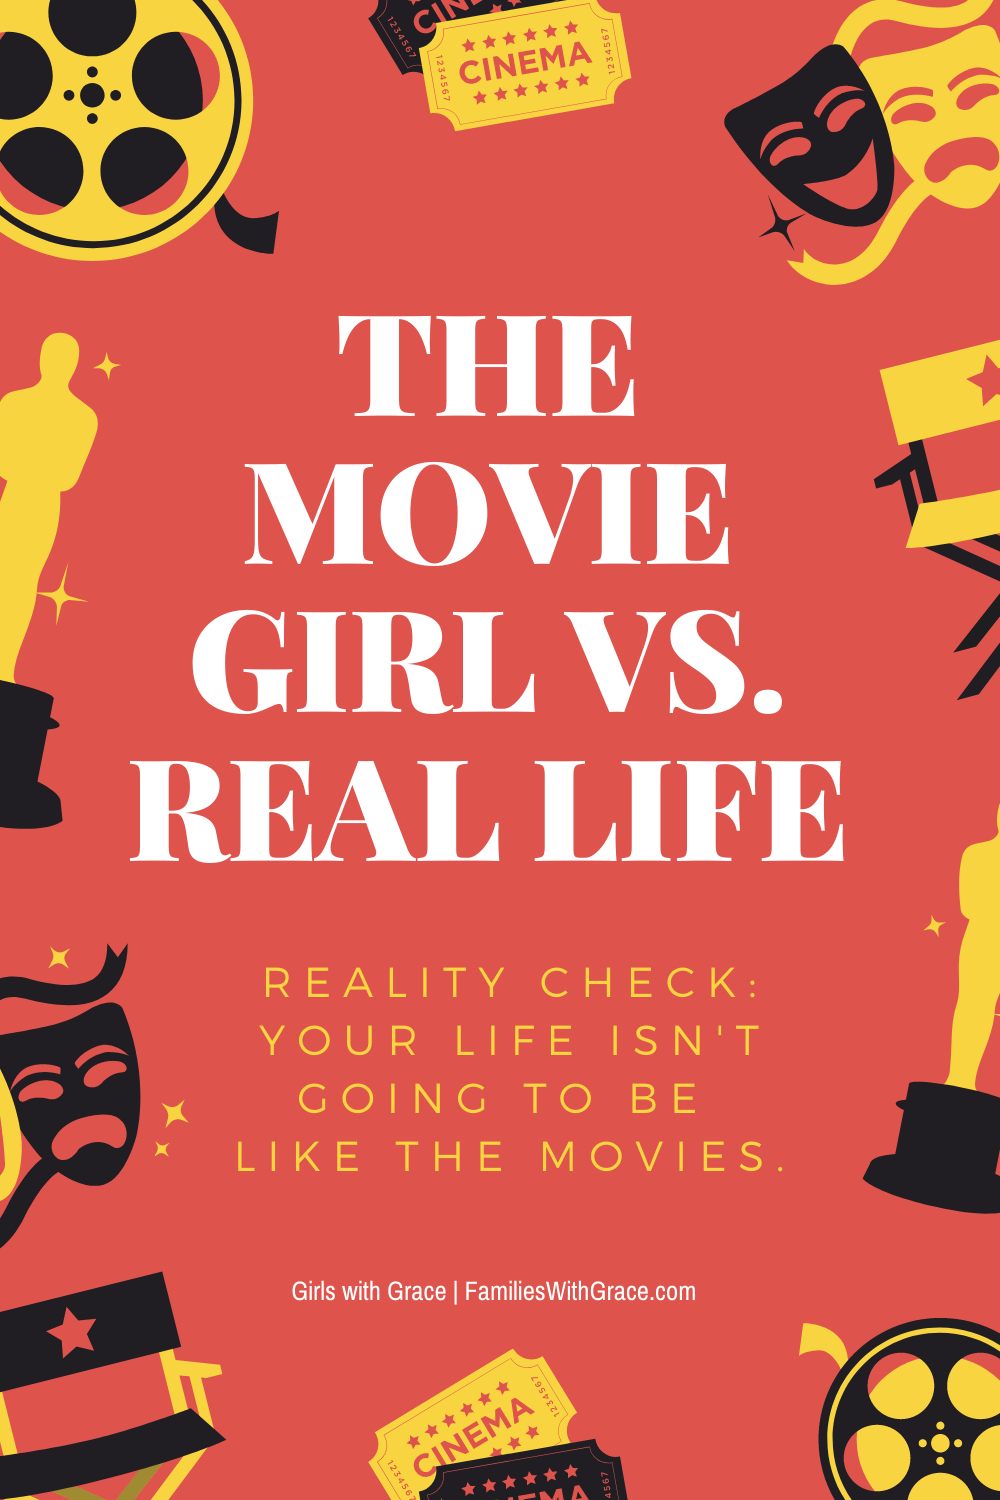 The movie girl vs. real life